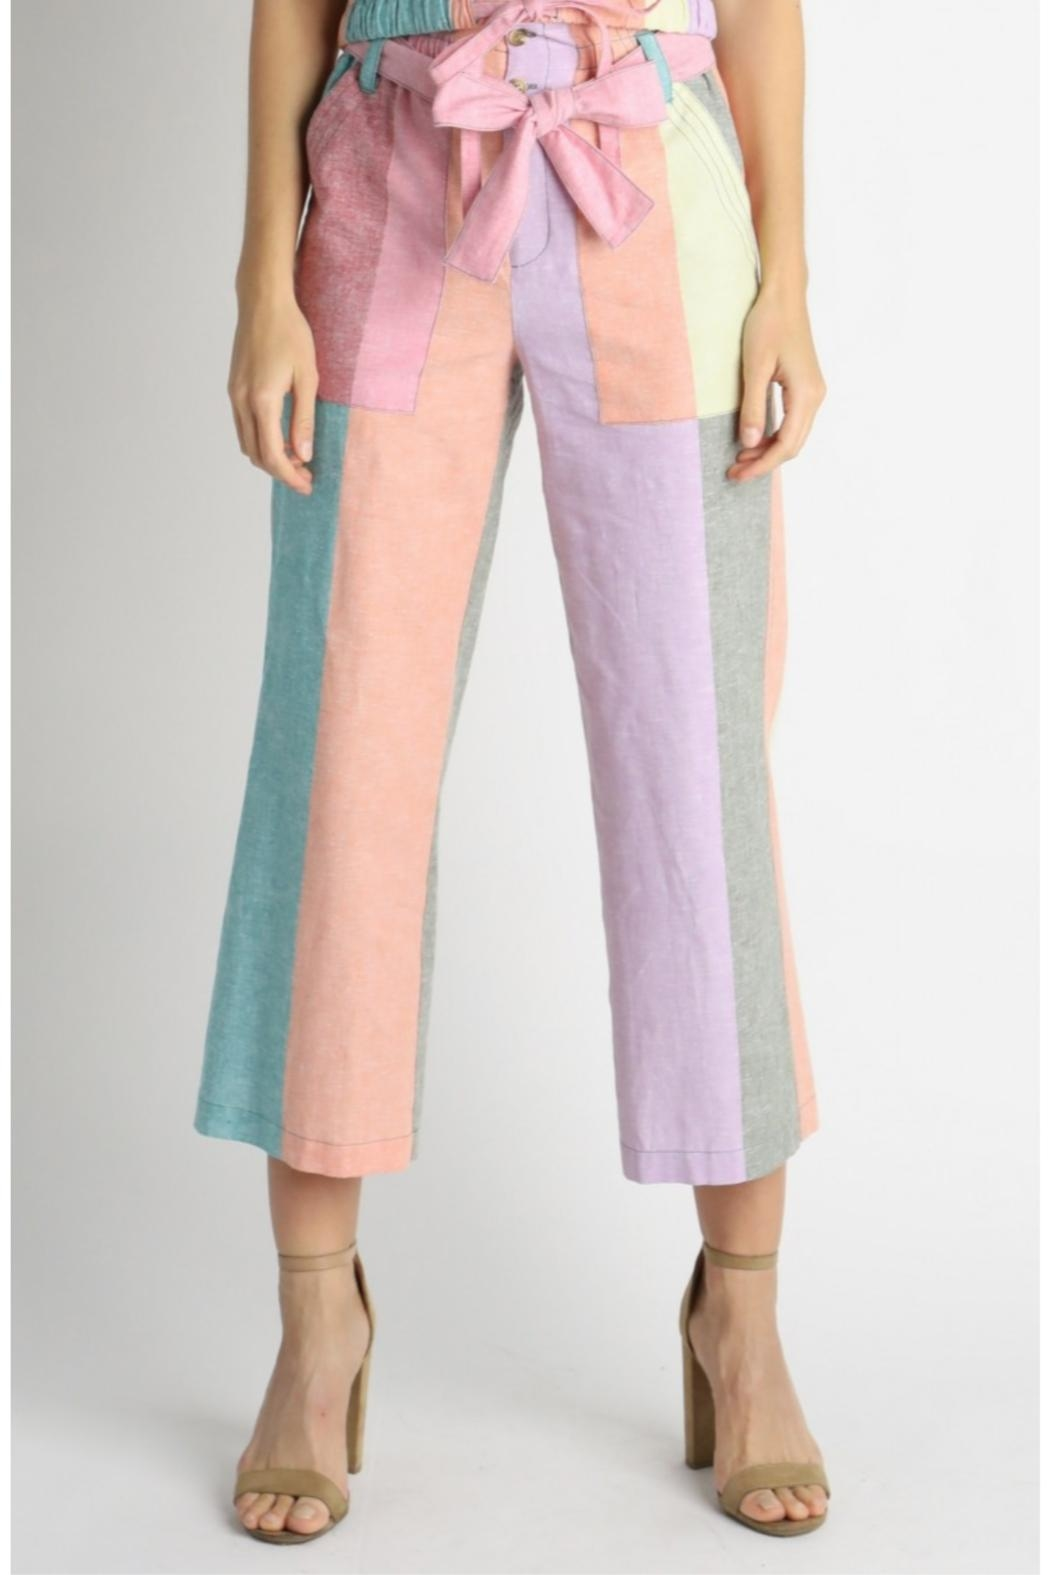 Current Air Colorblock Paperbag Pants - Front Cropped Image